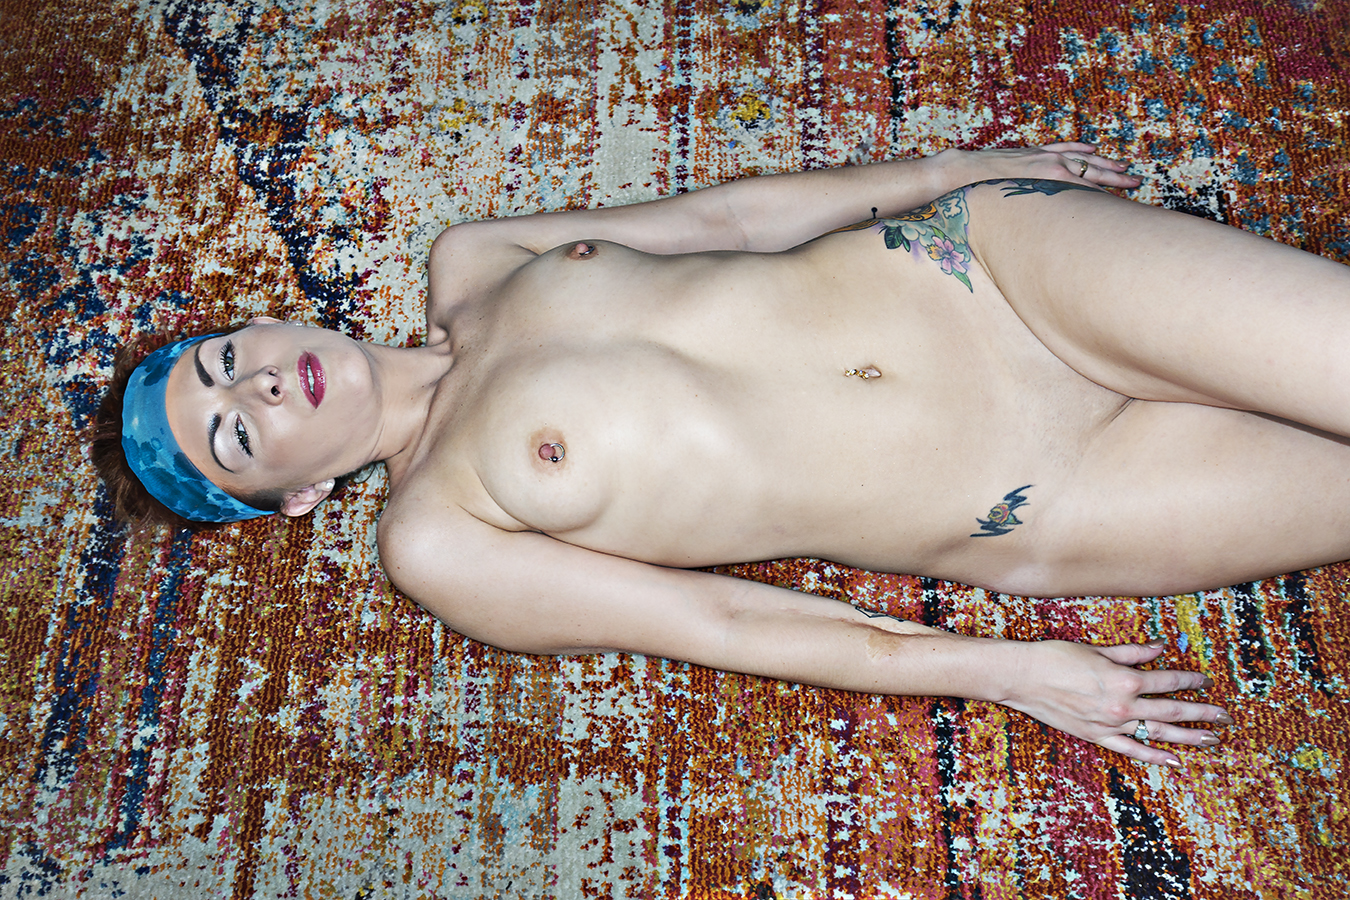 Tony_Ward_Studio_Katie_Kerl_nude_tattoos_piercings_erotic